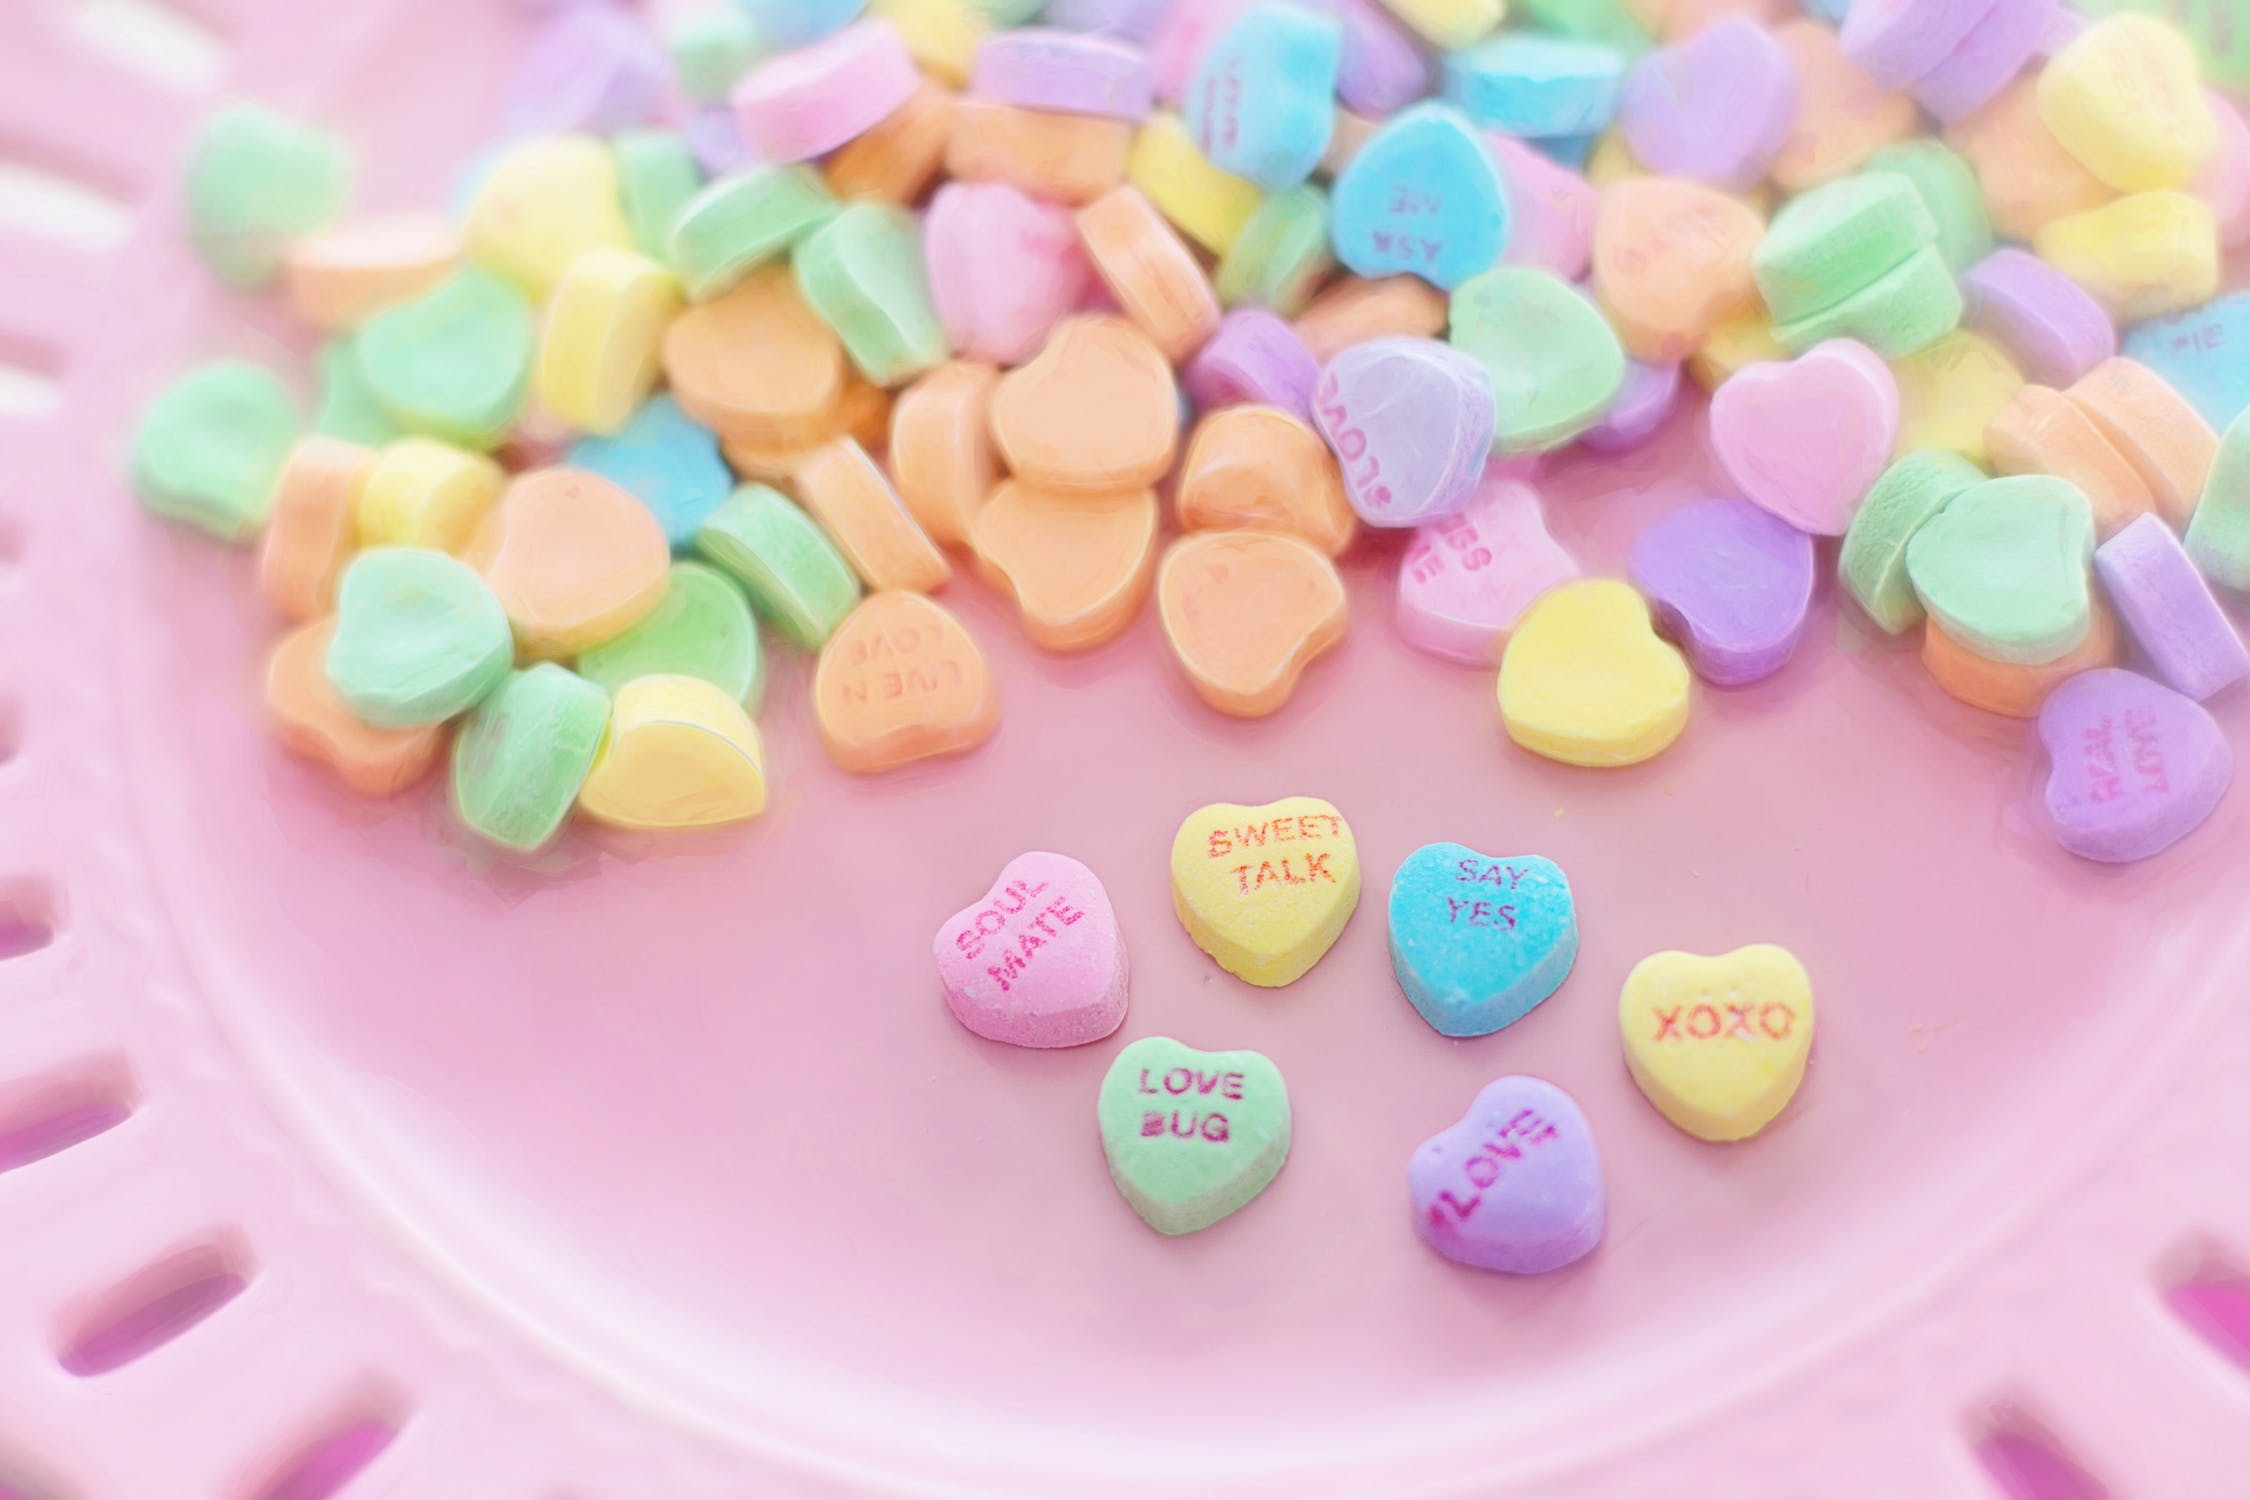 Colorful heart shaped sweets with love quotes on them